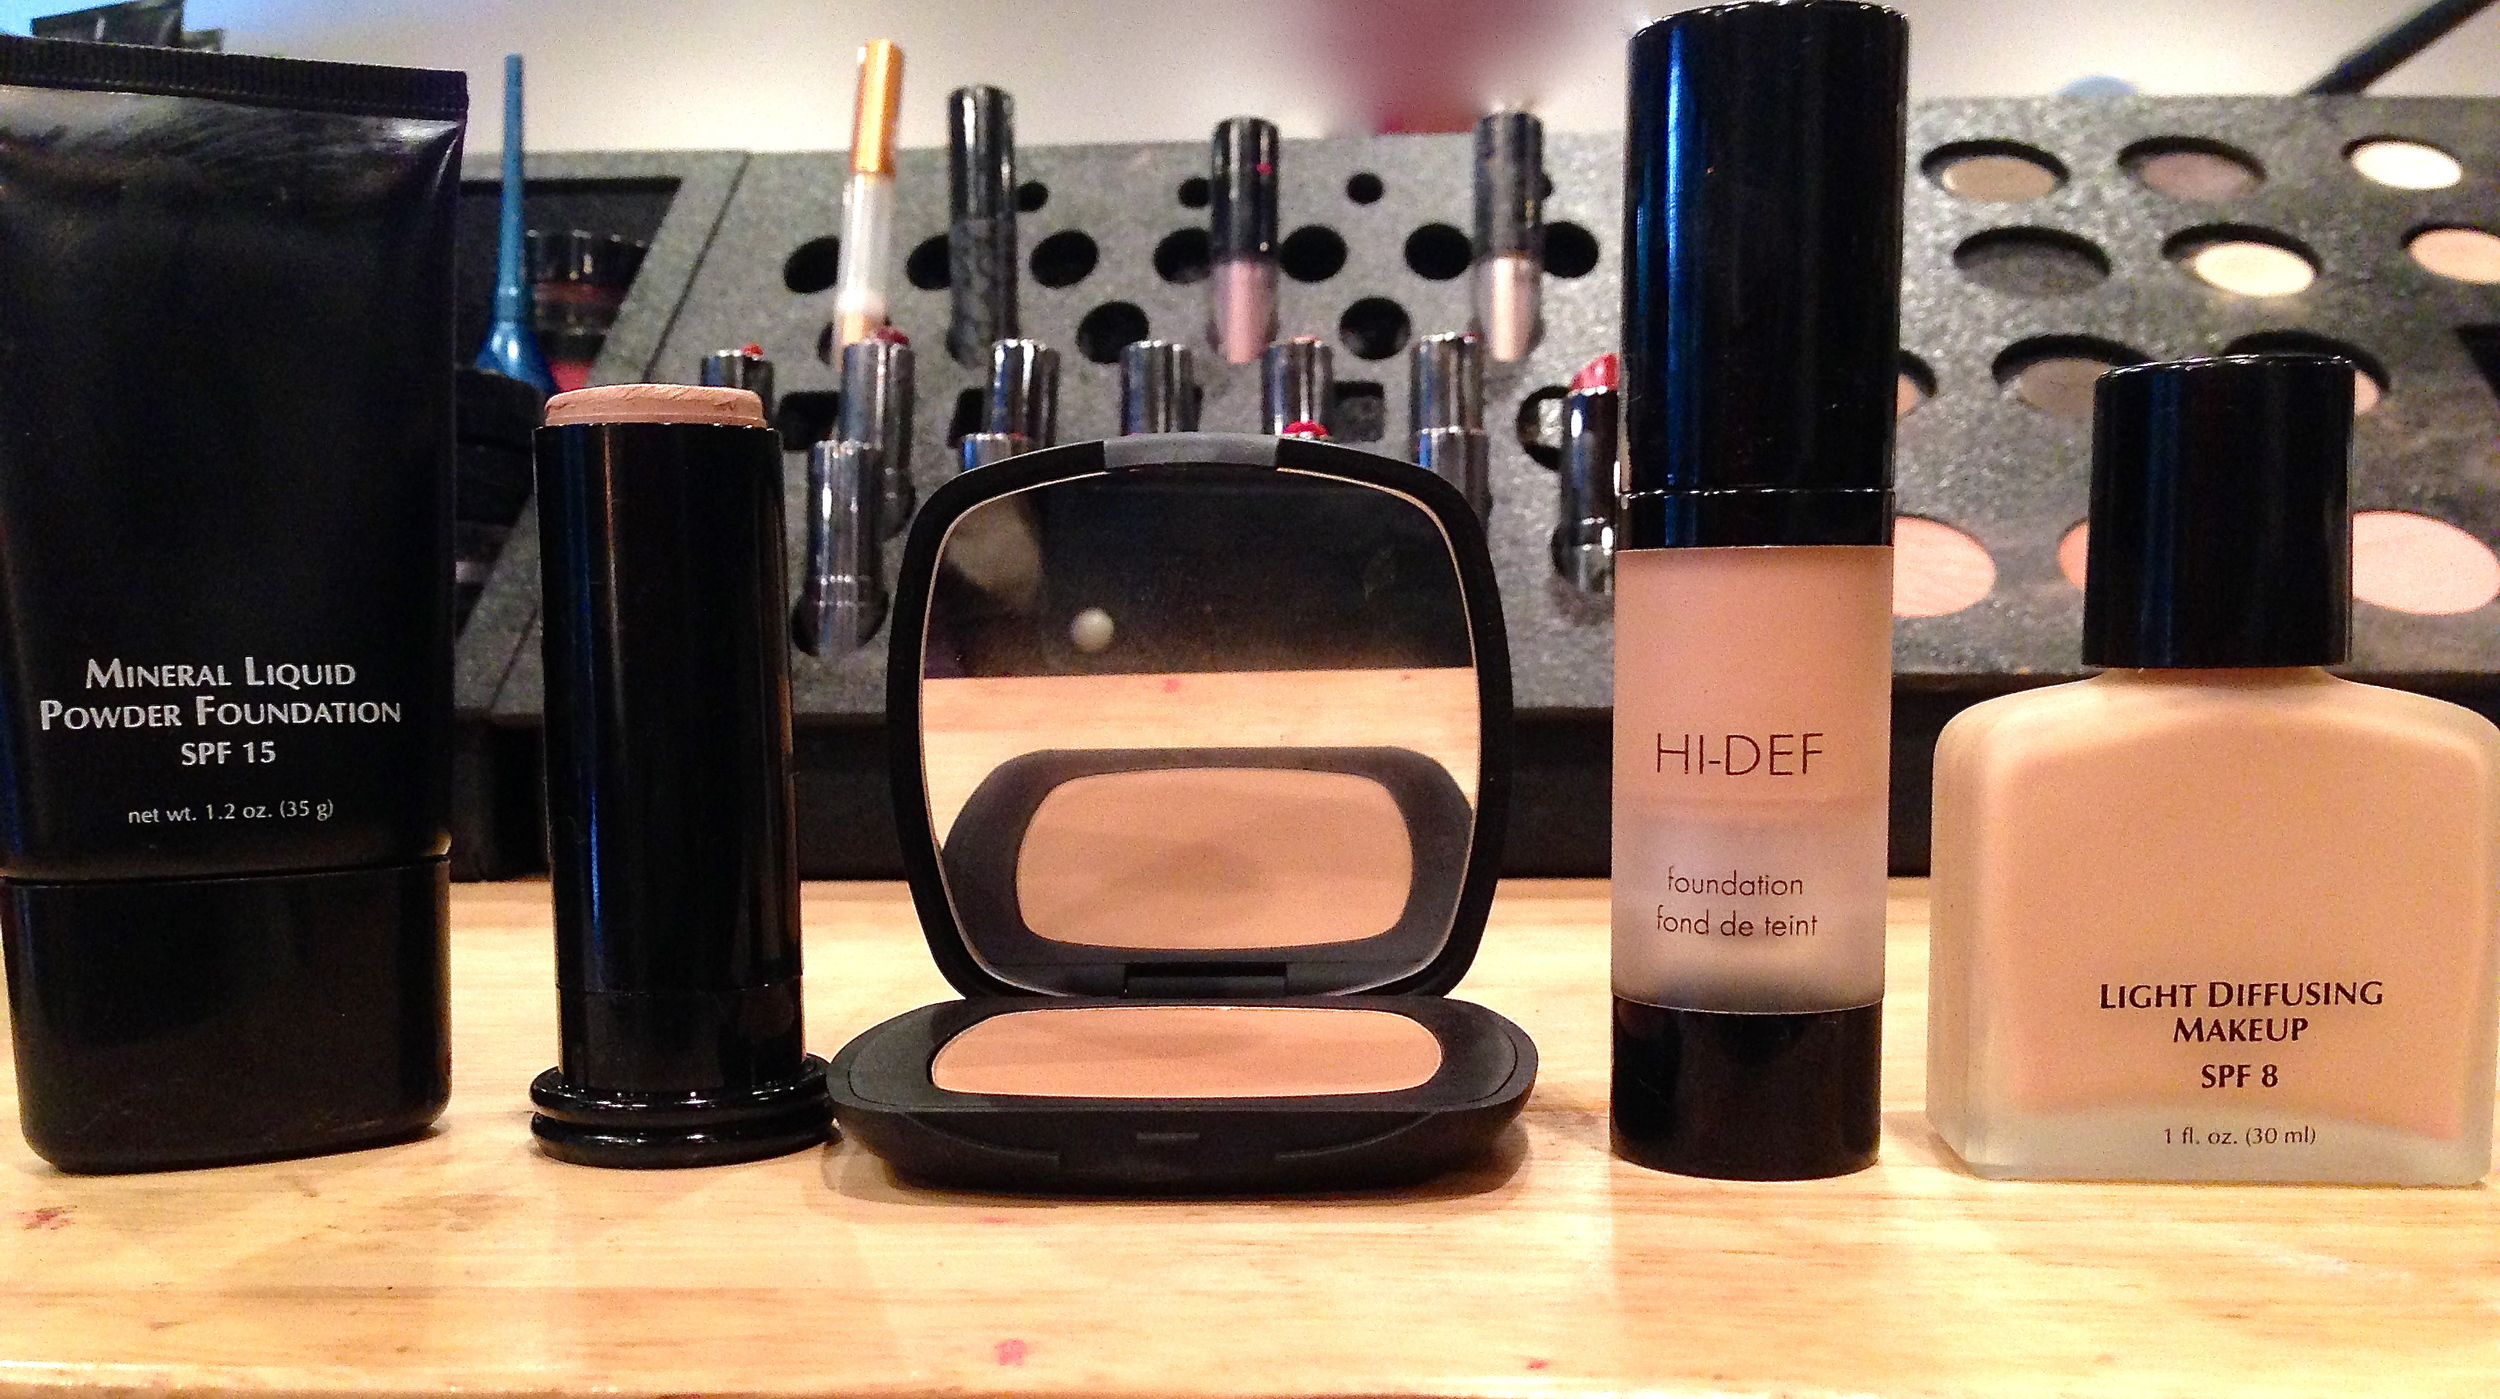 Foundations in liquide mineral, cream, powder, Hi-Def, oil free, and with oil